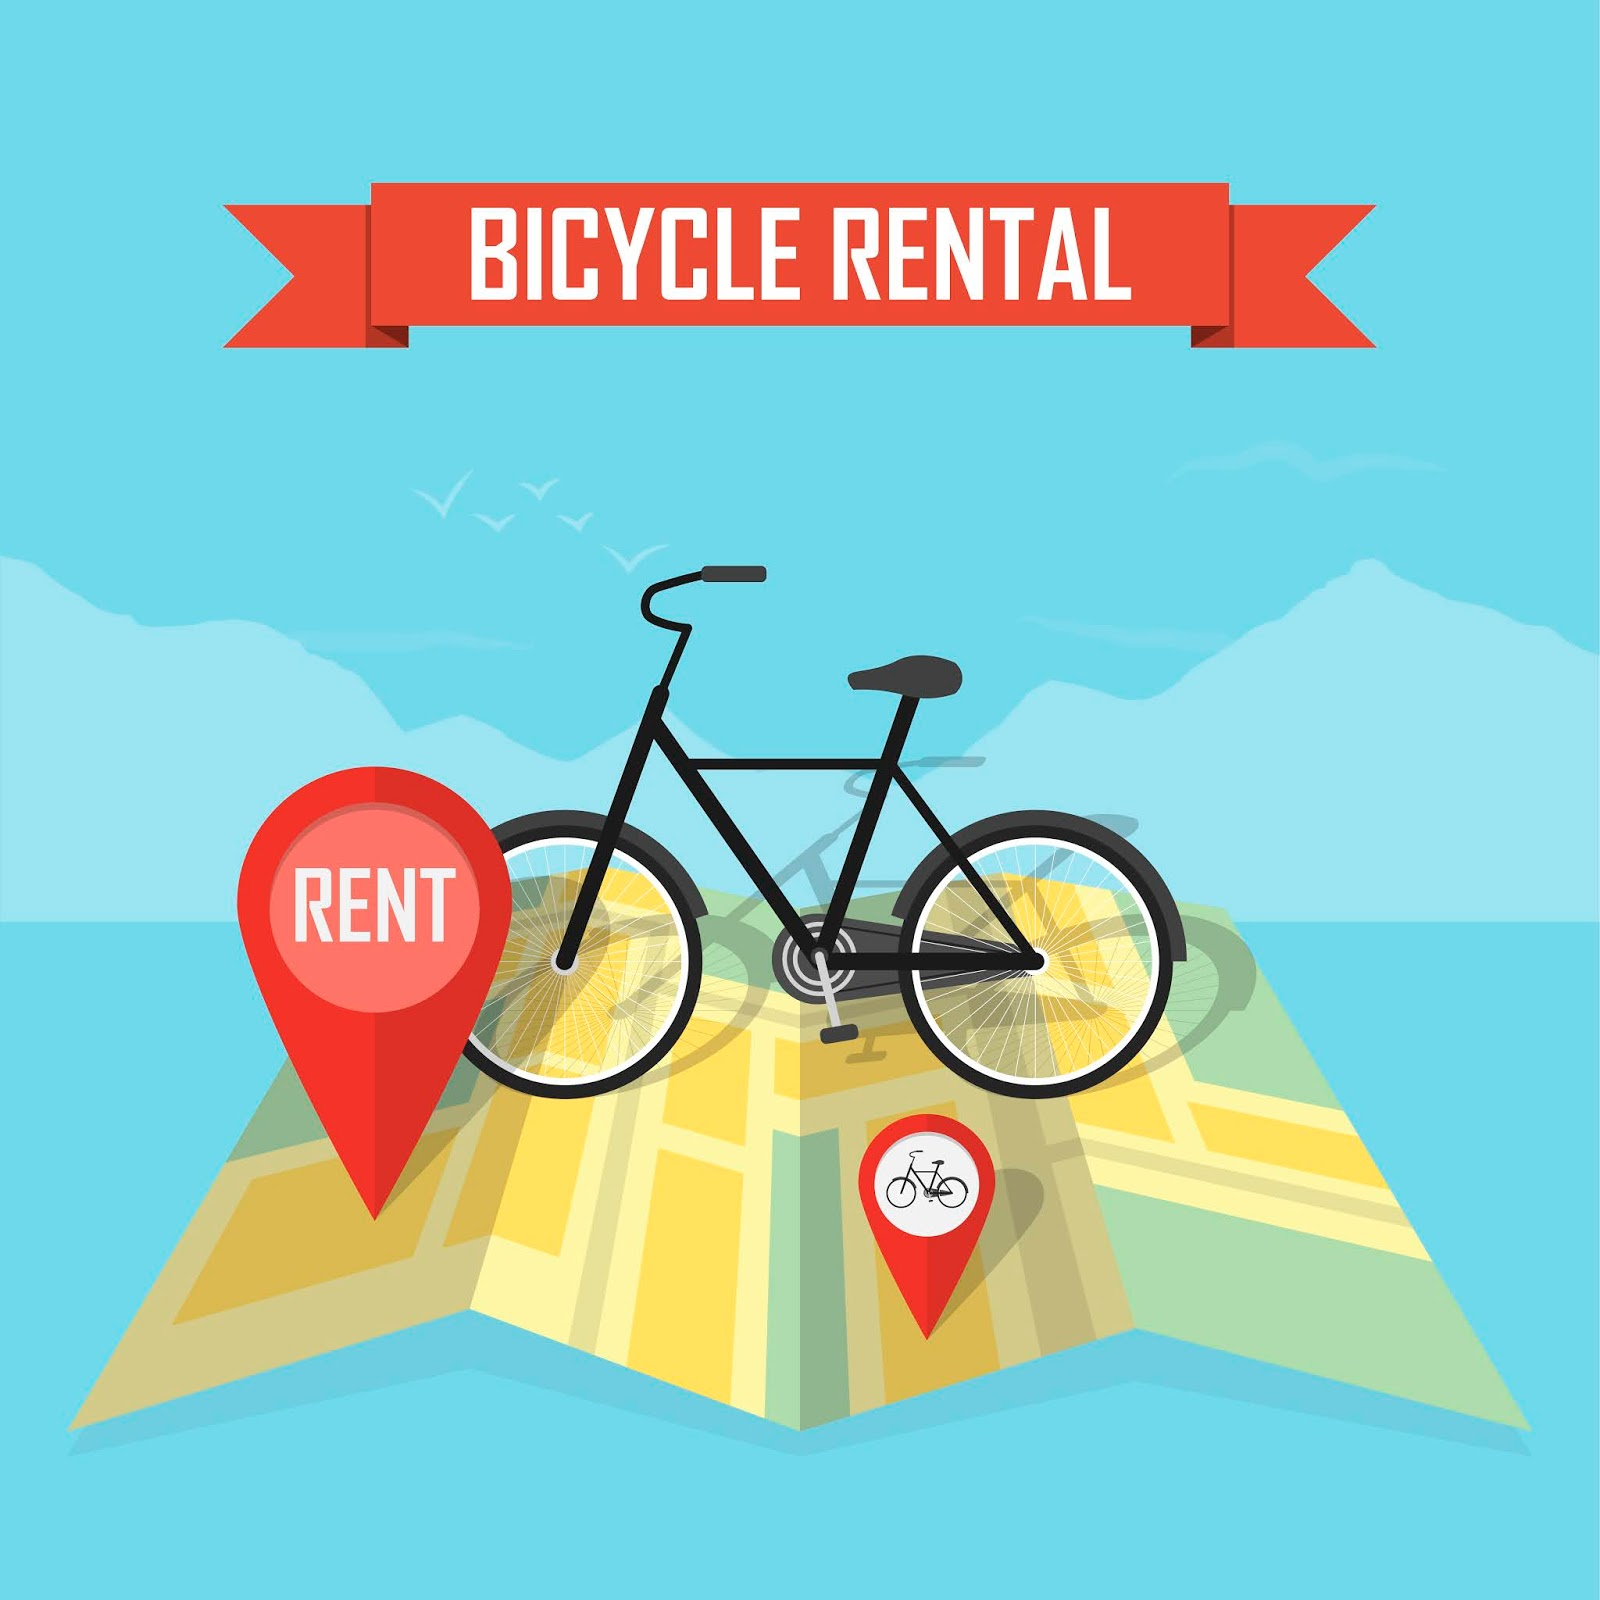 Vector Bike Rental Map Background Free Download Vector CDR, AI, EPS and PNG Formats